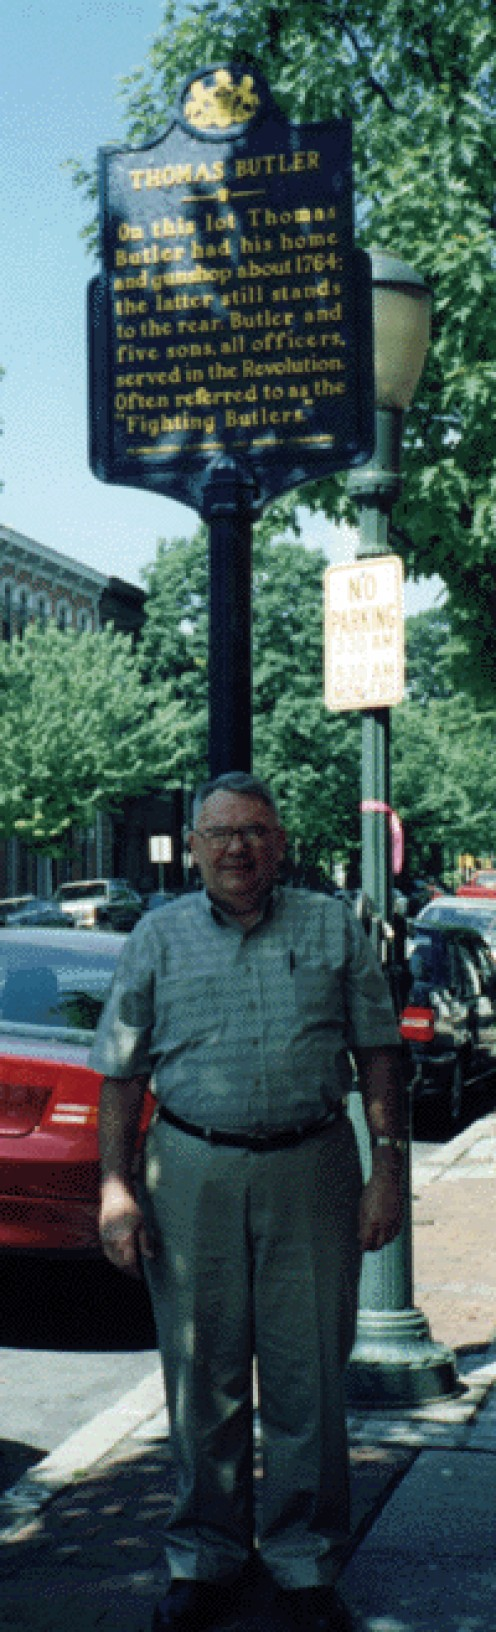 The author, Bill Smith, in front of the Butler sign, in Carlisle, on May 2000 genealogy trip..